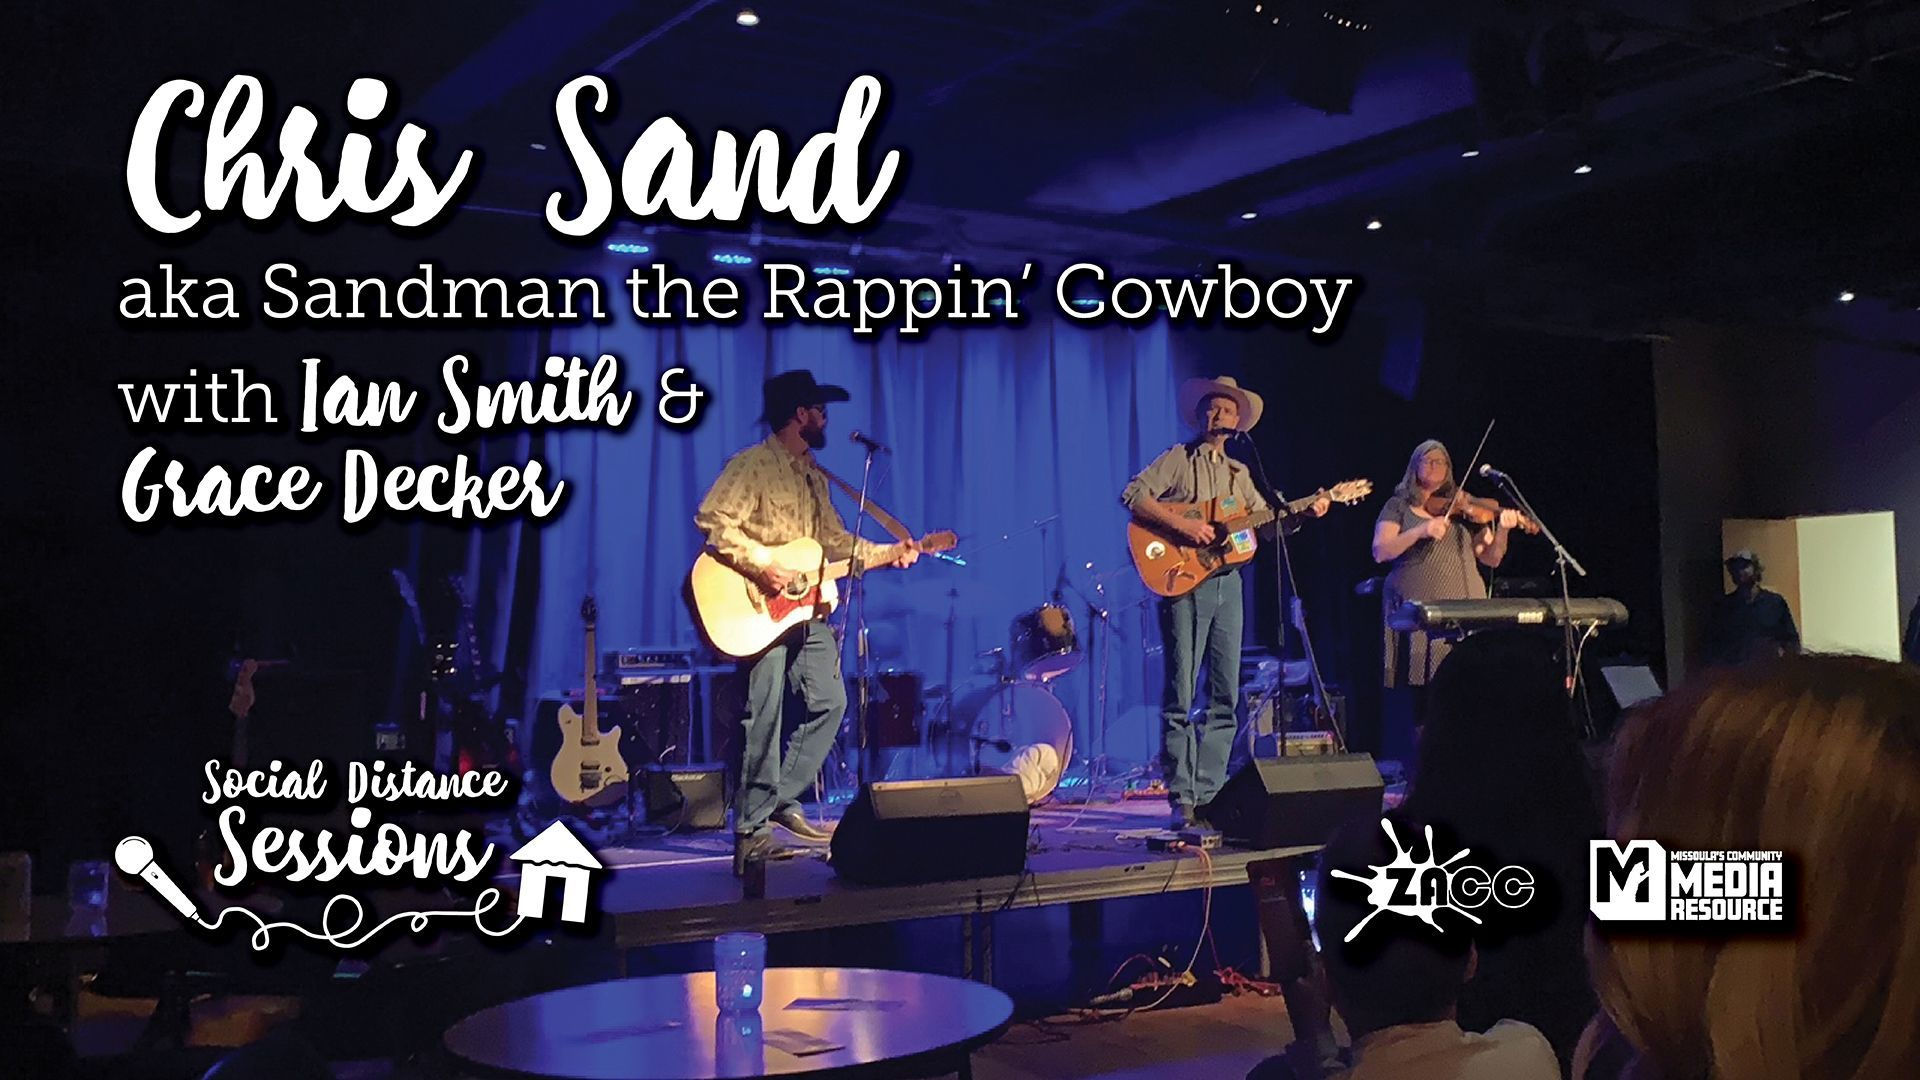 Social Distance Sessions: Chris Sand (Sandman the Rappin' Cowboy) with Ian Smith and Grace Decker